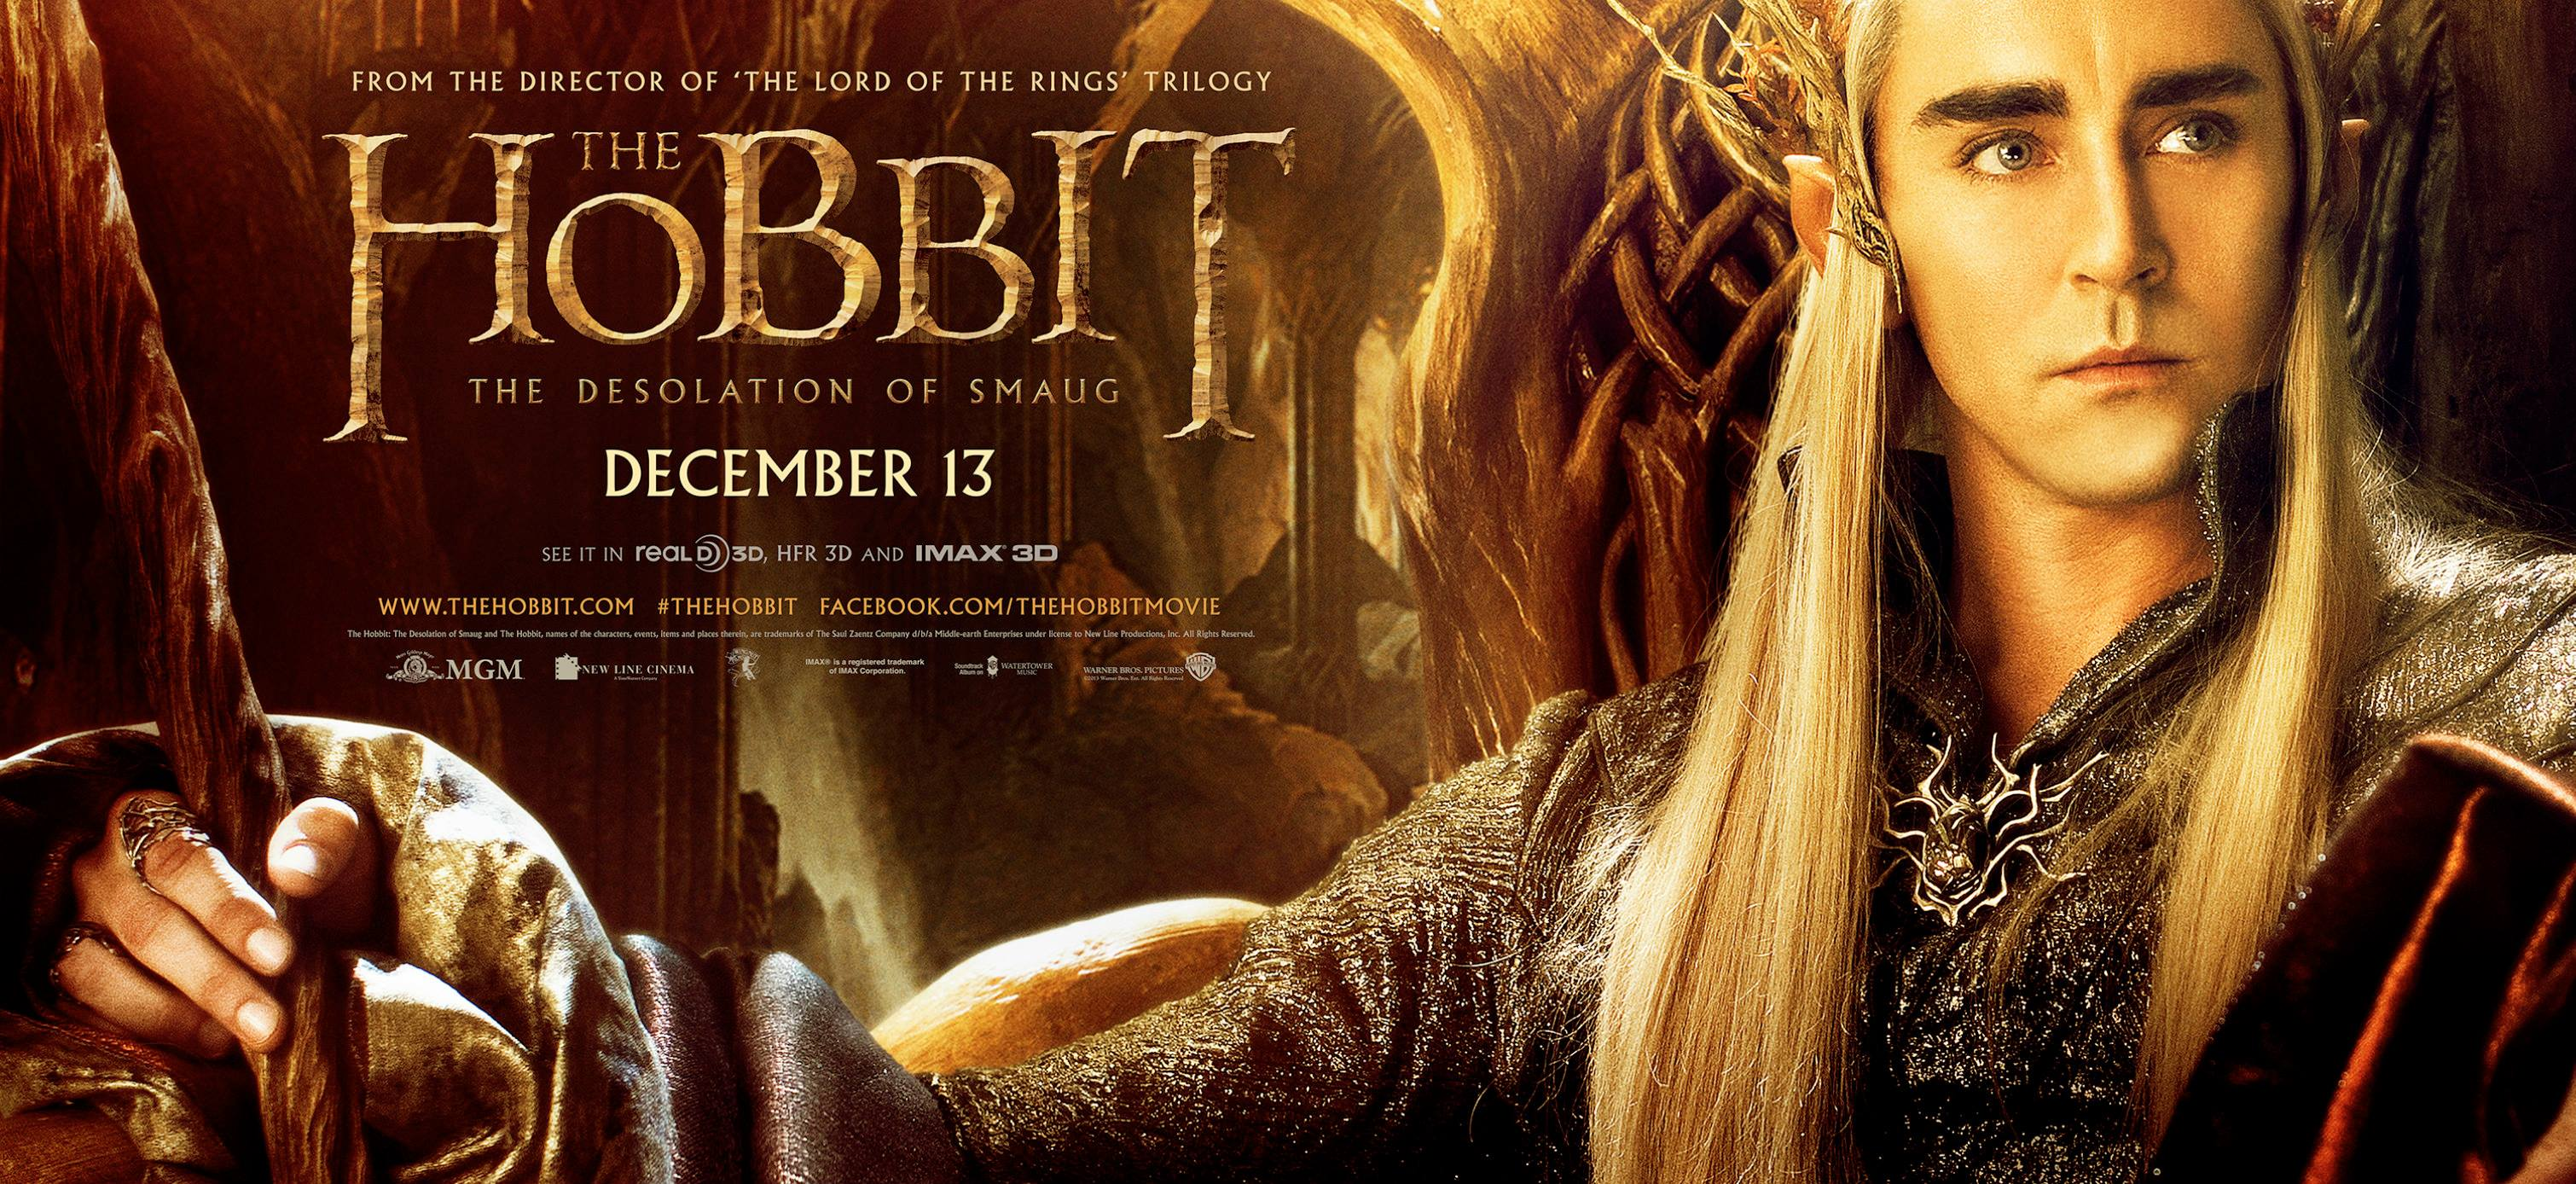 The Desolation of Smaug the Elven King Thrandruil Movie Poster